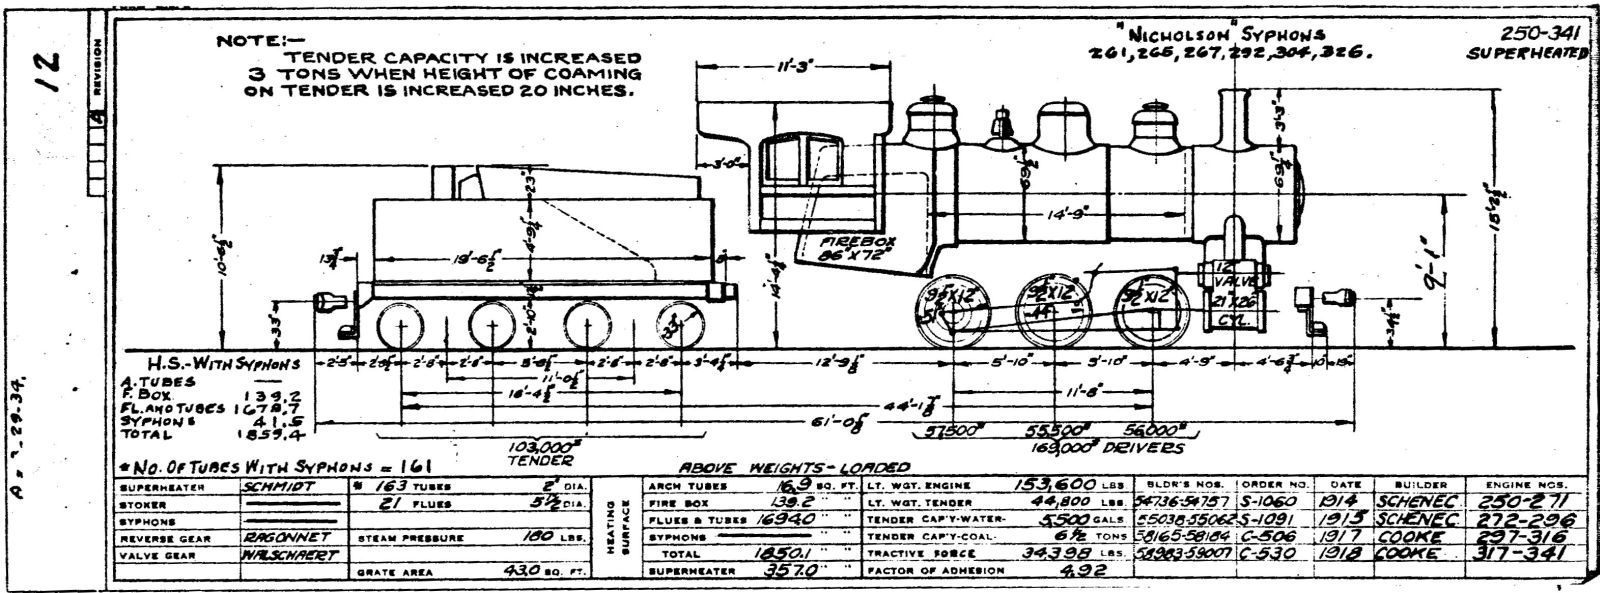 hight resolution of 9 locomotives